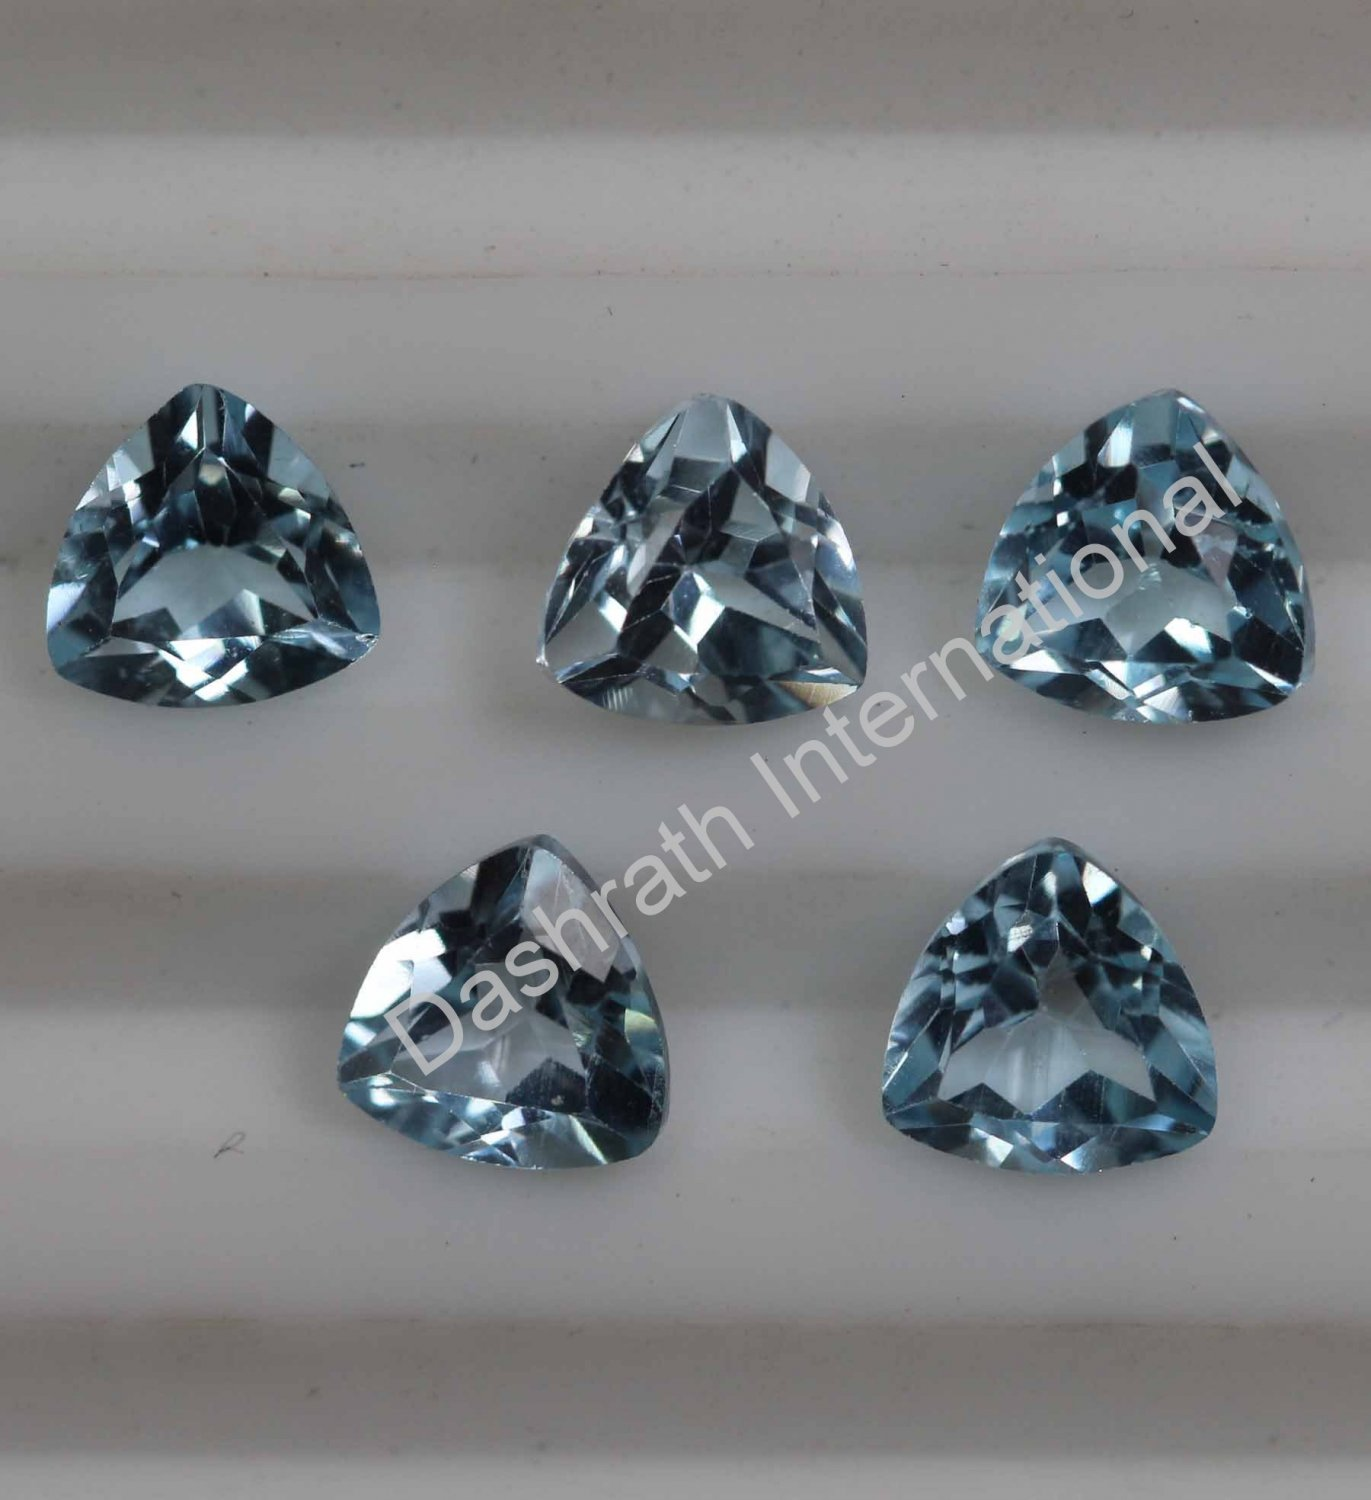 3mm Natural Sky Blue Topaz Faceted Cut Trillion 5 Pieces Lot  Top Quality Loose Gemstone